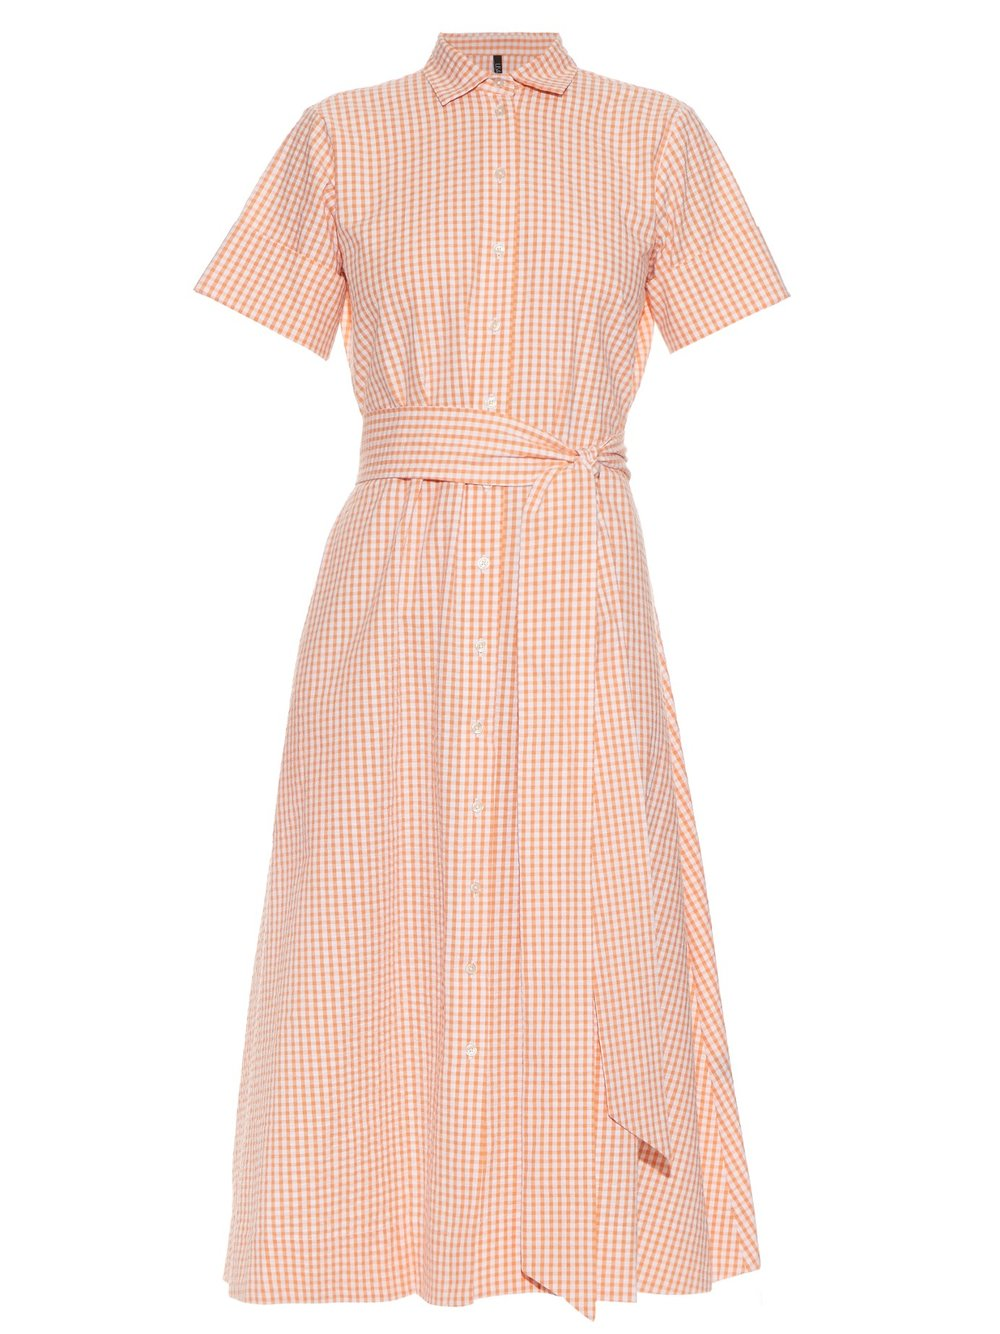 LISA MARIE FERNANDEZ CHECKED COTTON SHIRTDRESS